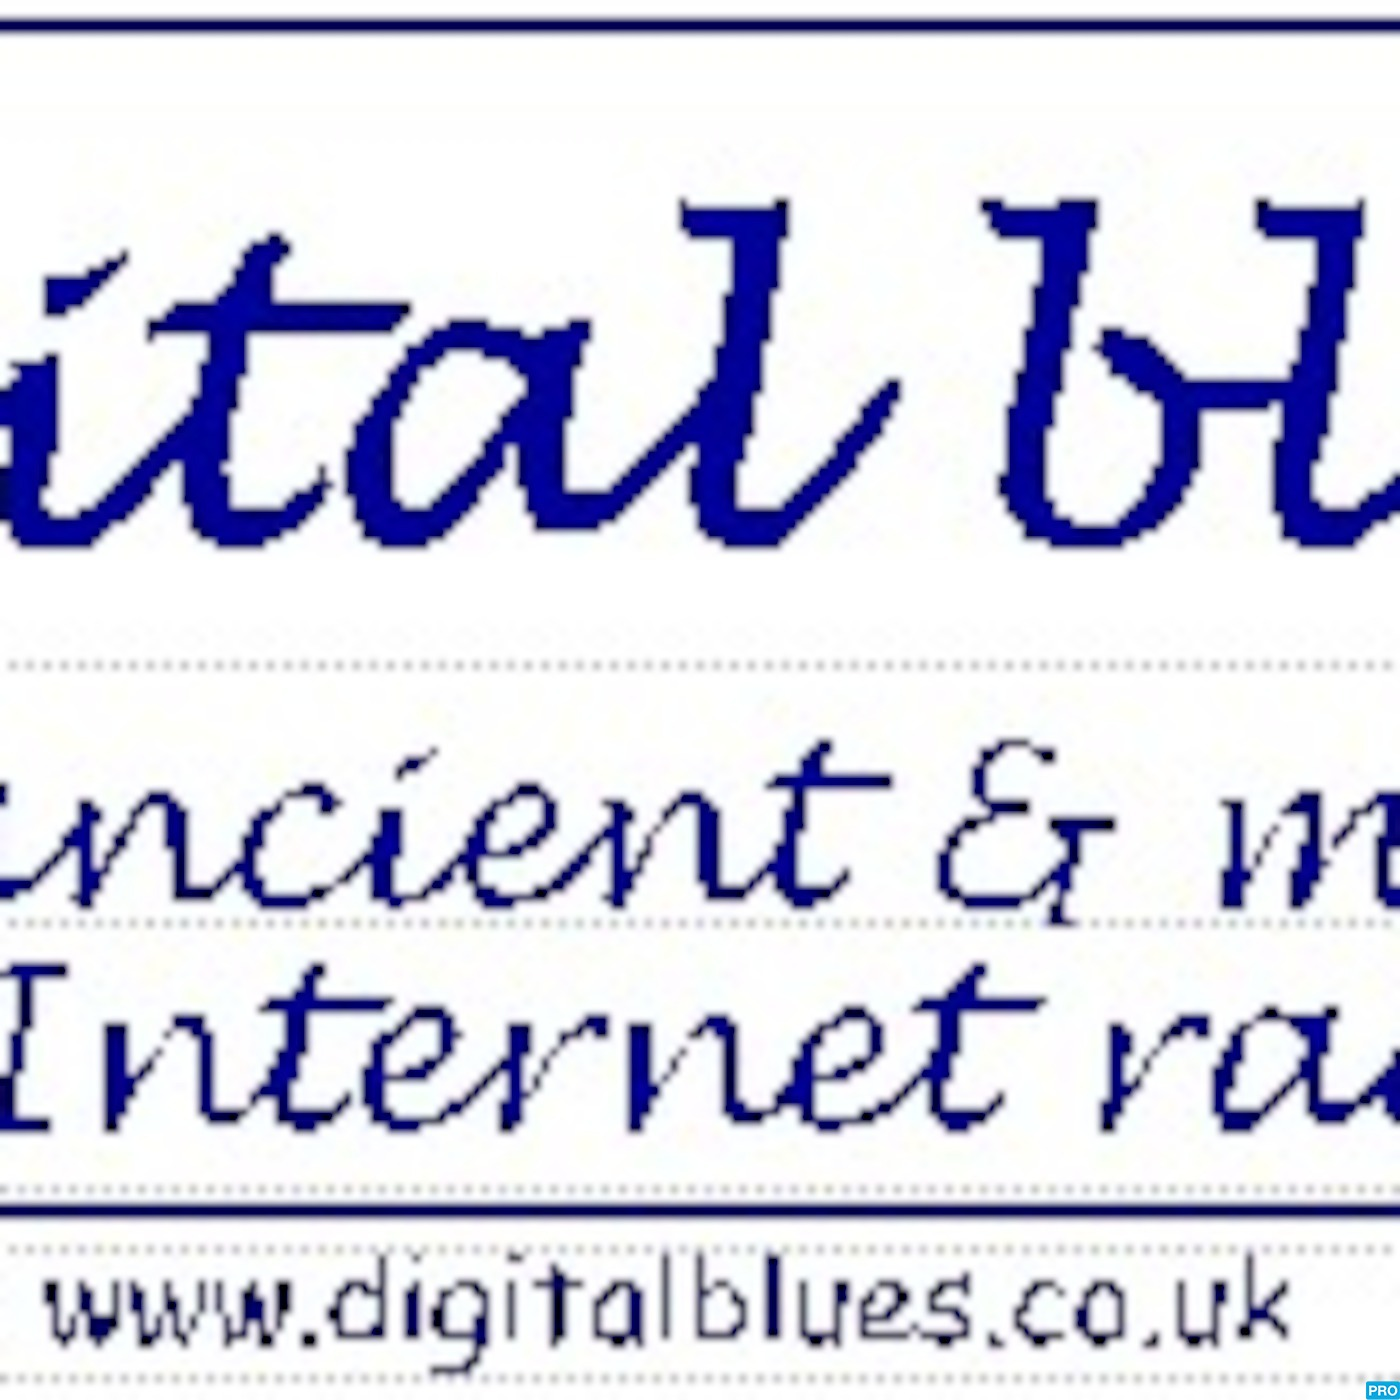 Digital Blues' Podcasts